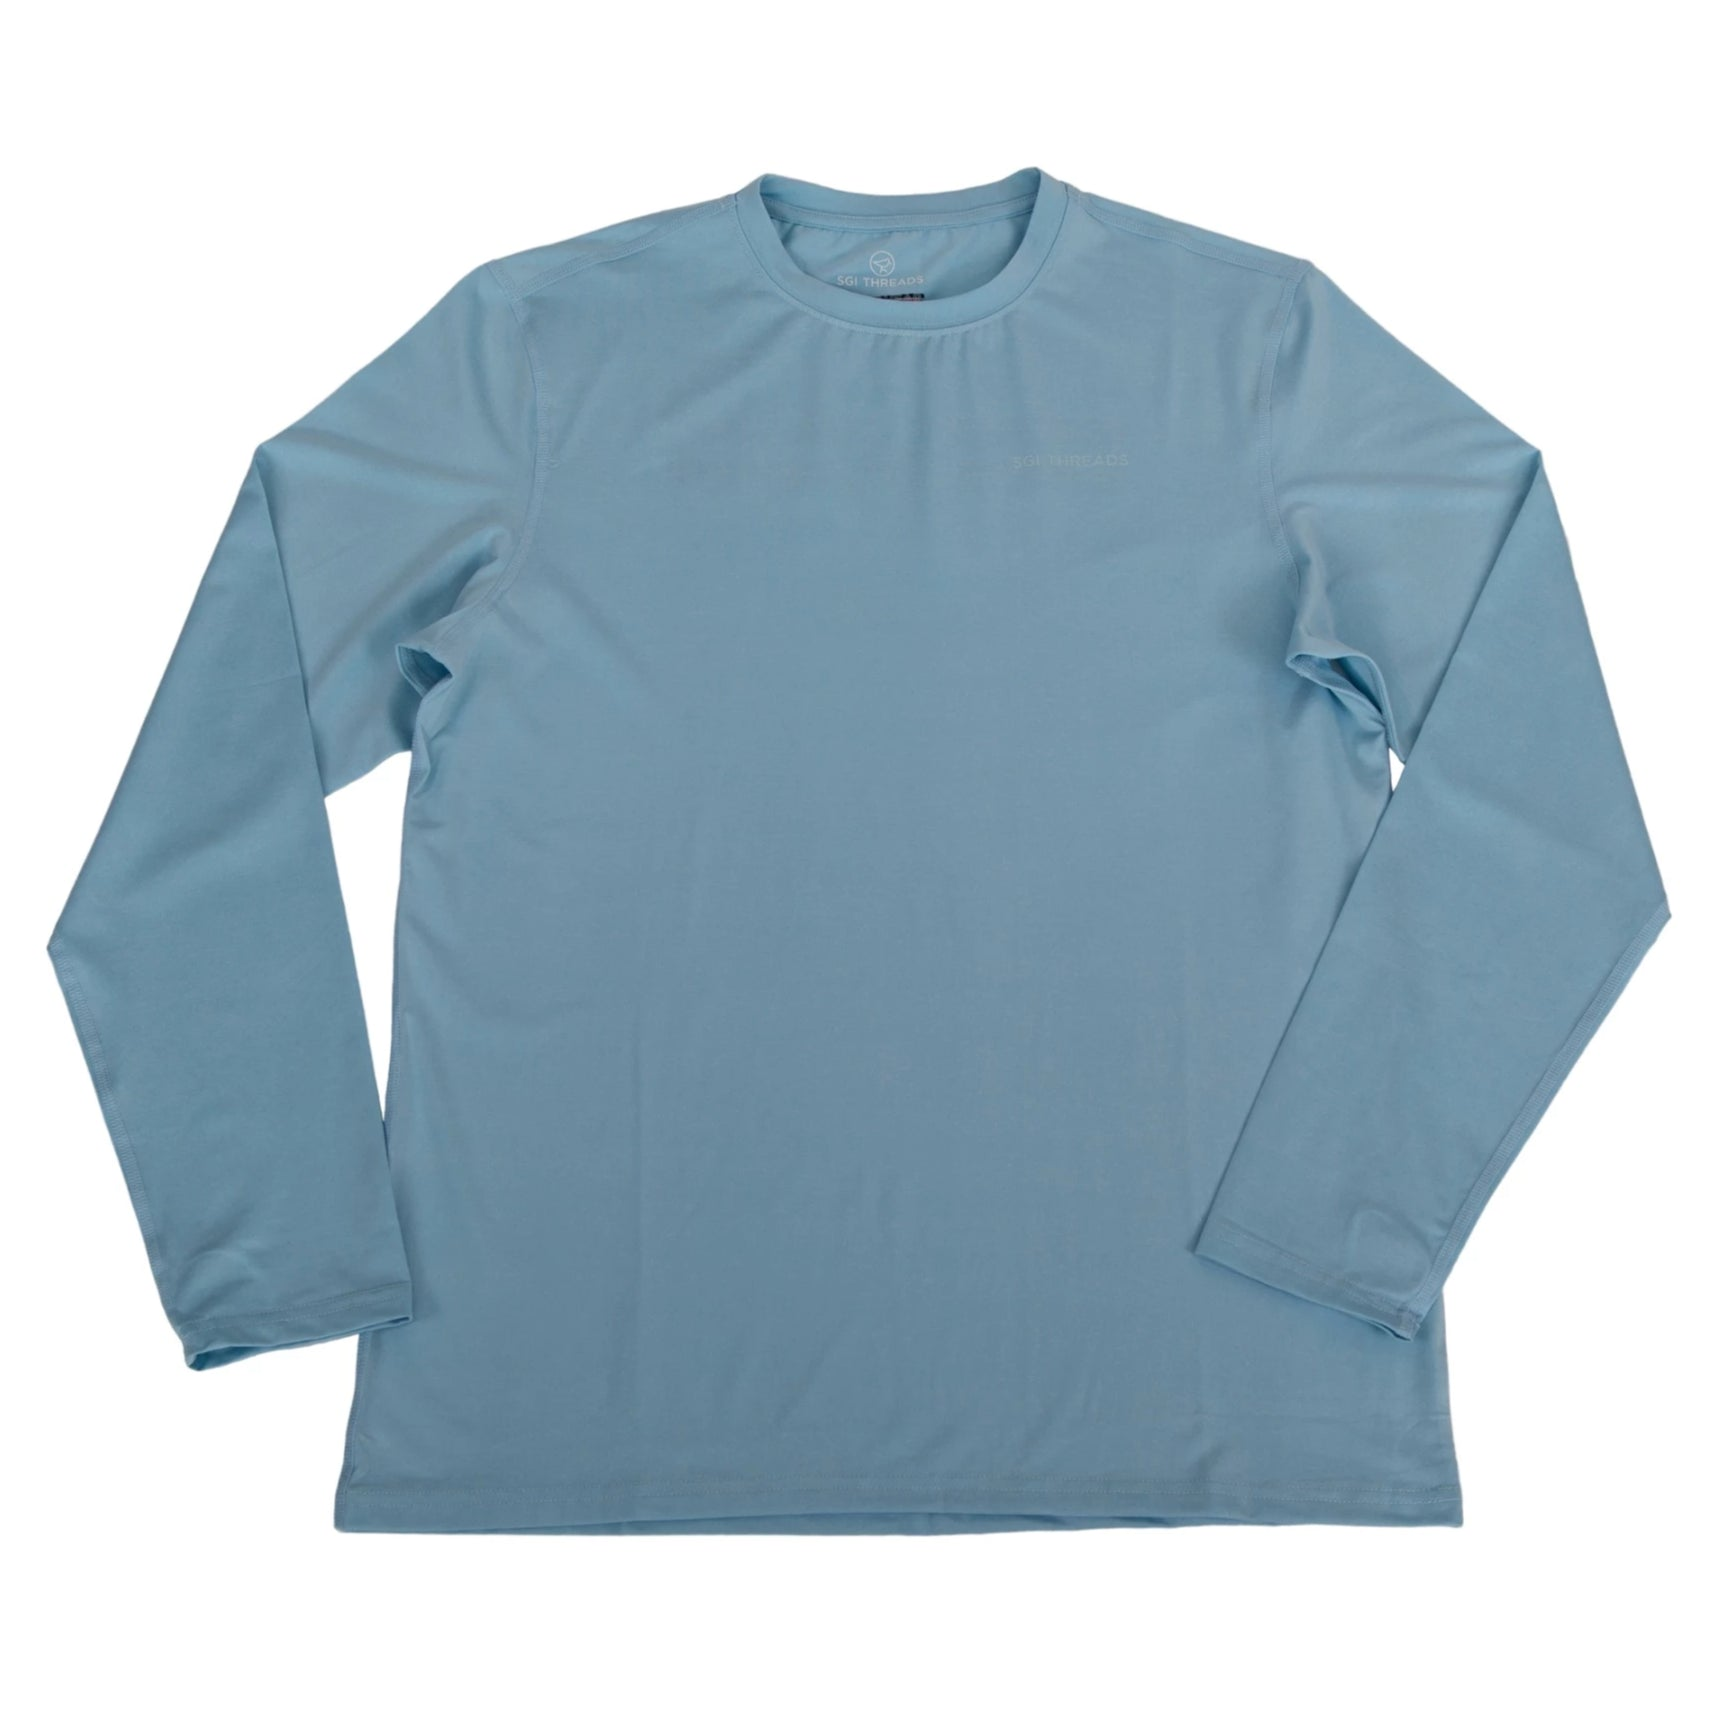 EVERYWHERE SAND TECH LONG-SLEEVE TEE BLUE